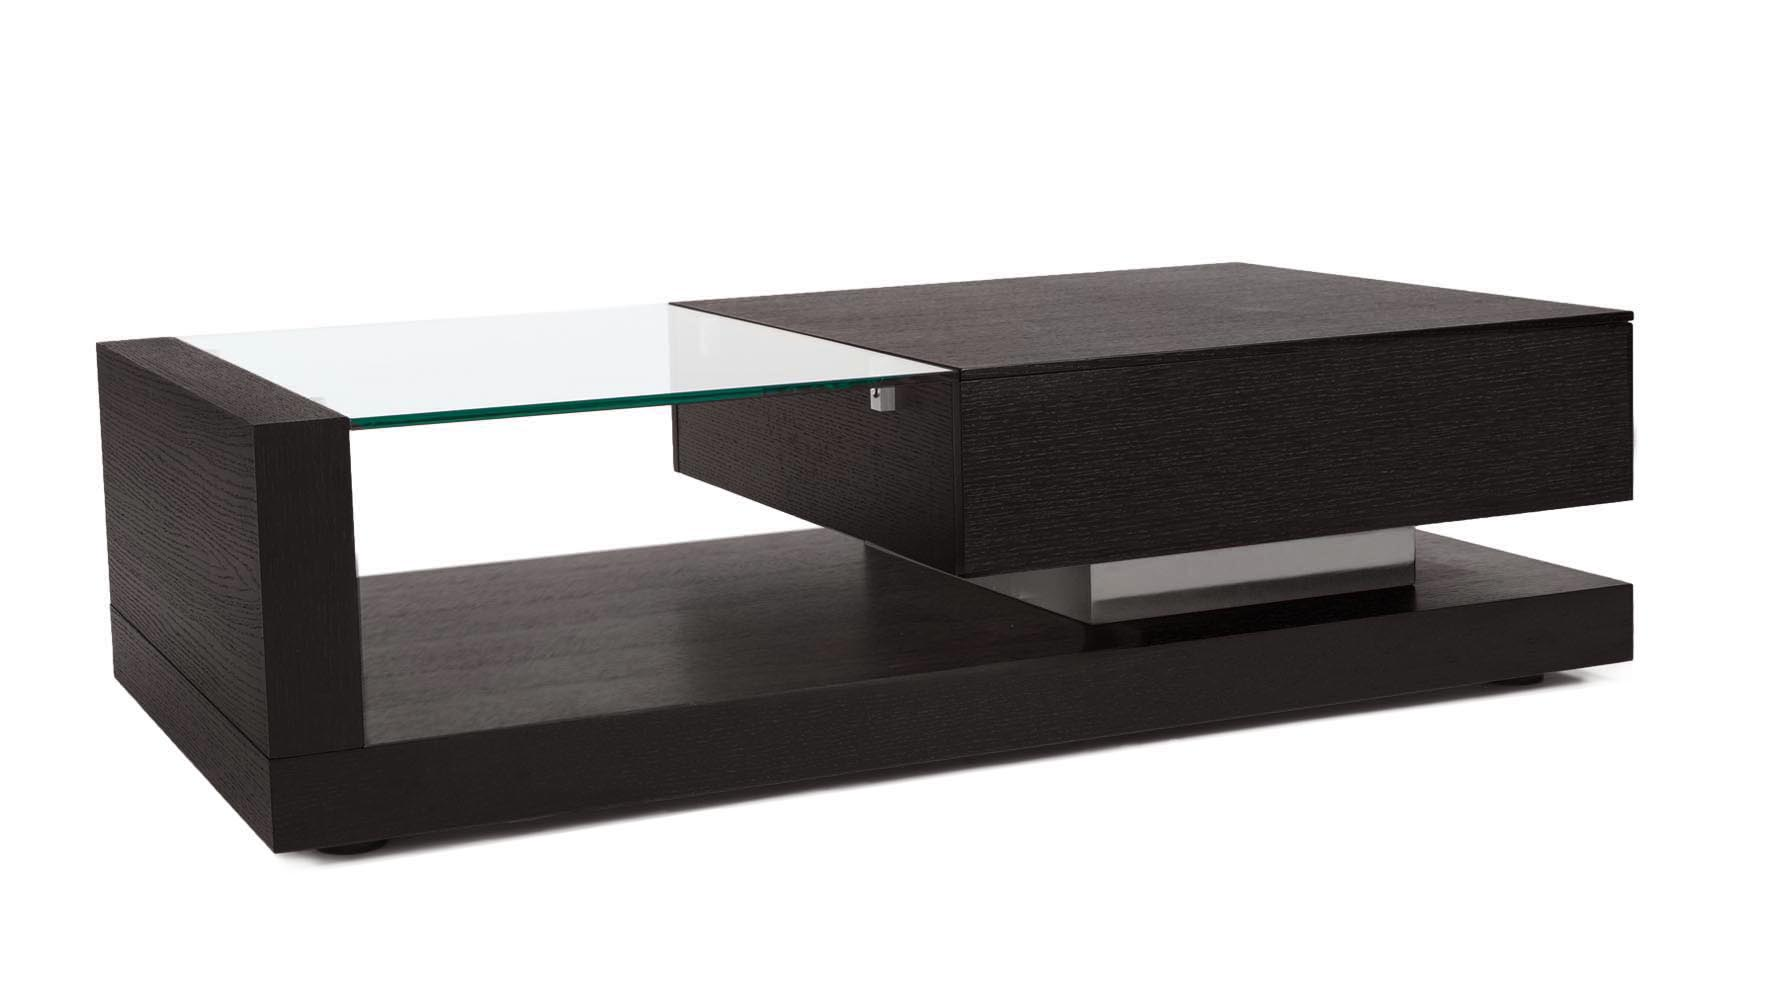 Glass Coffee Table Images.Etta Coffee Table